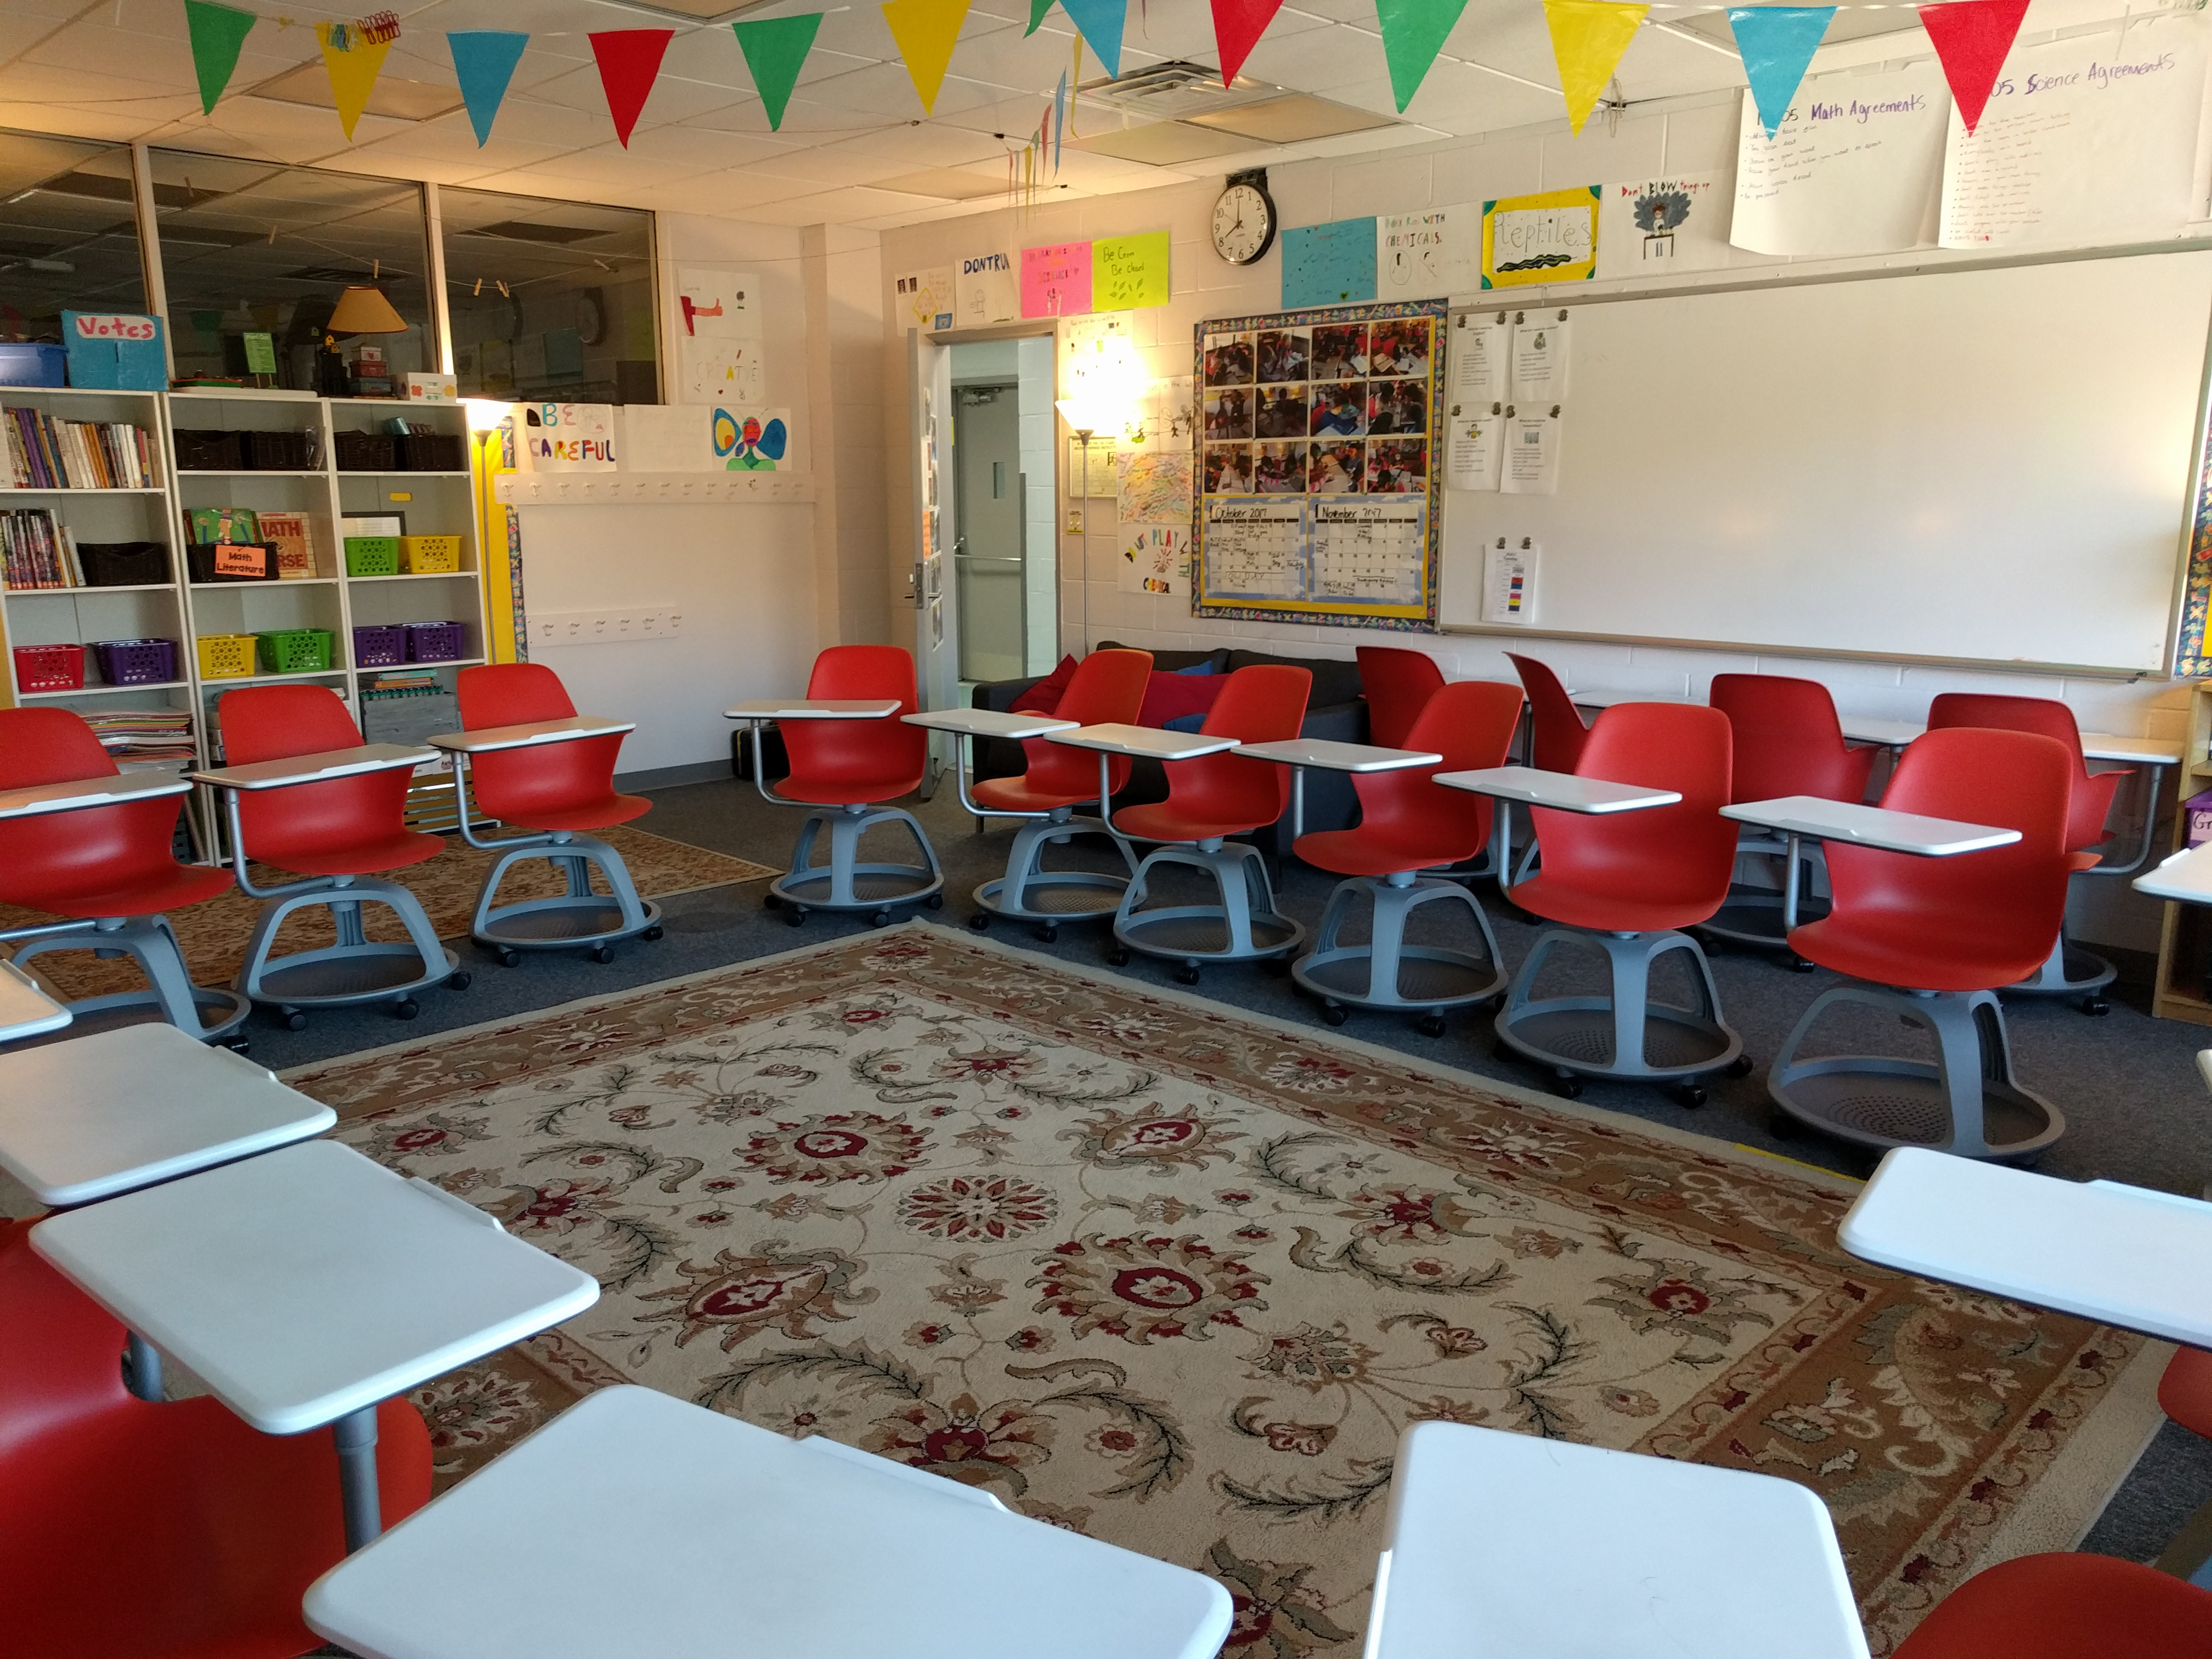 Classroom seating in a 5th grade math/science room